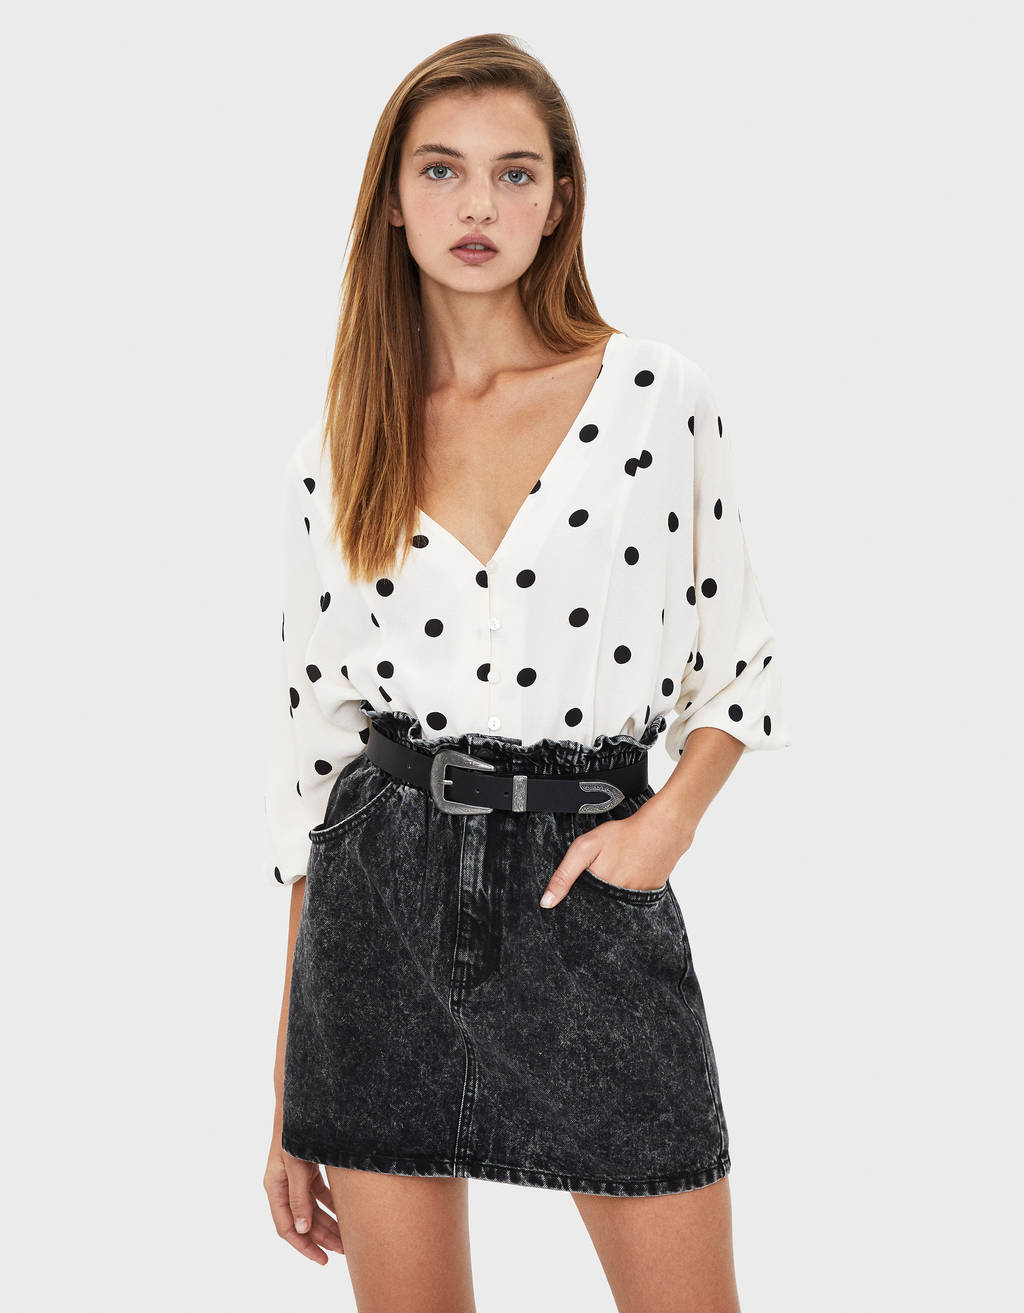 47f20f9839 Women's Skirts - Spring Summer 2019 | Bershka